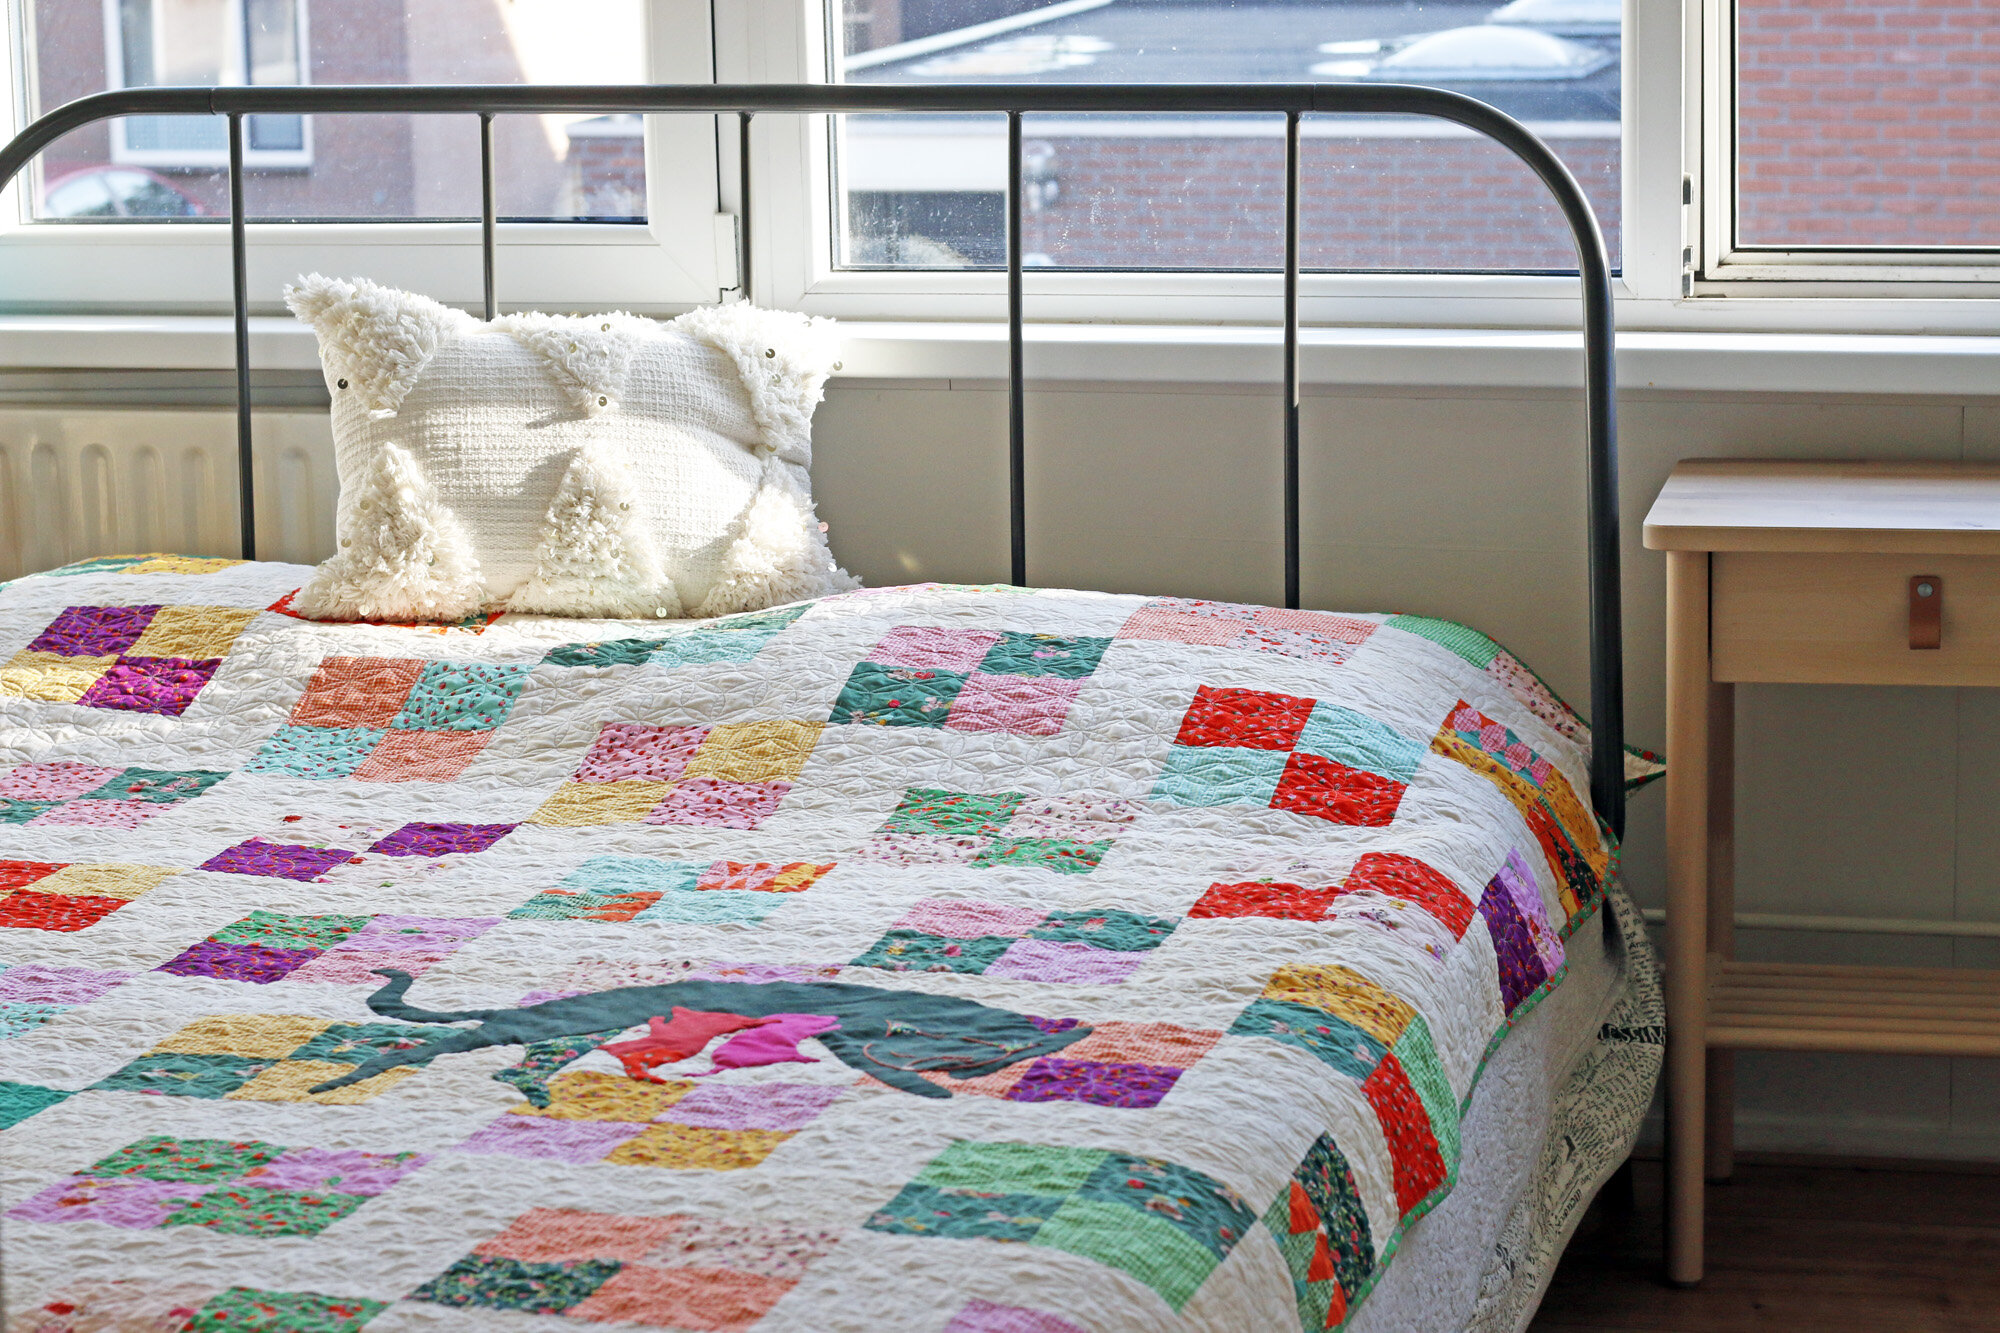 Trixie Cat quilt. Stitched in Color.jpg